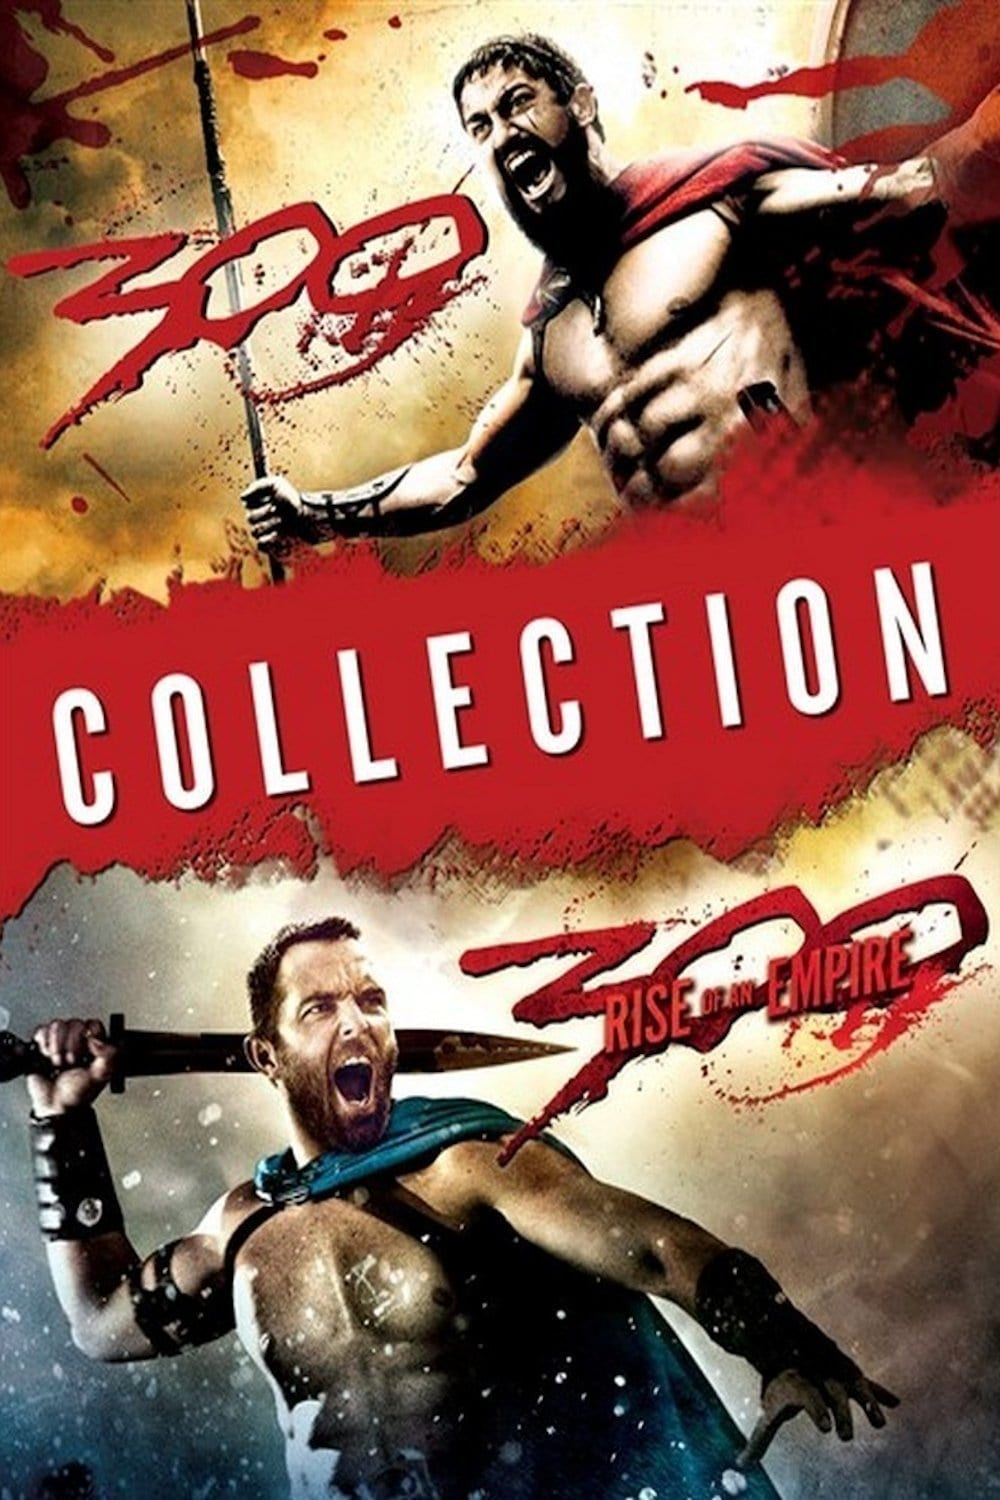 all movies from 300 collection saga are on movies film